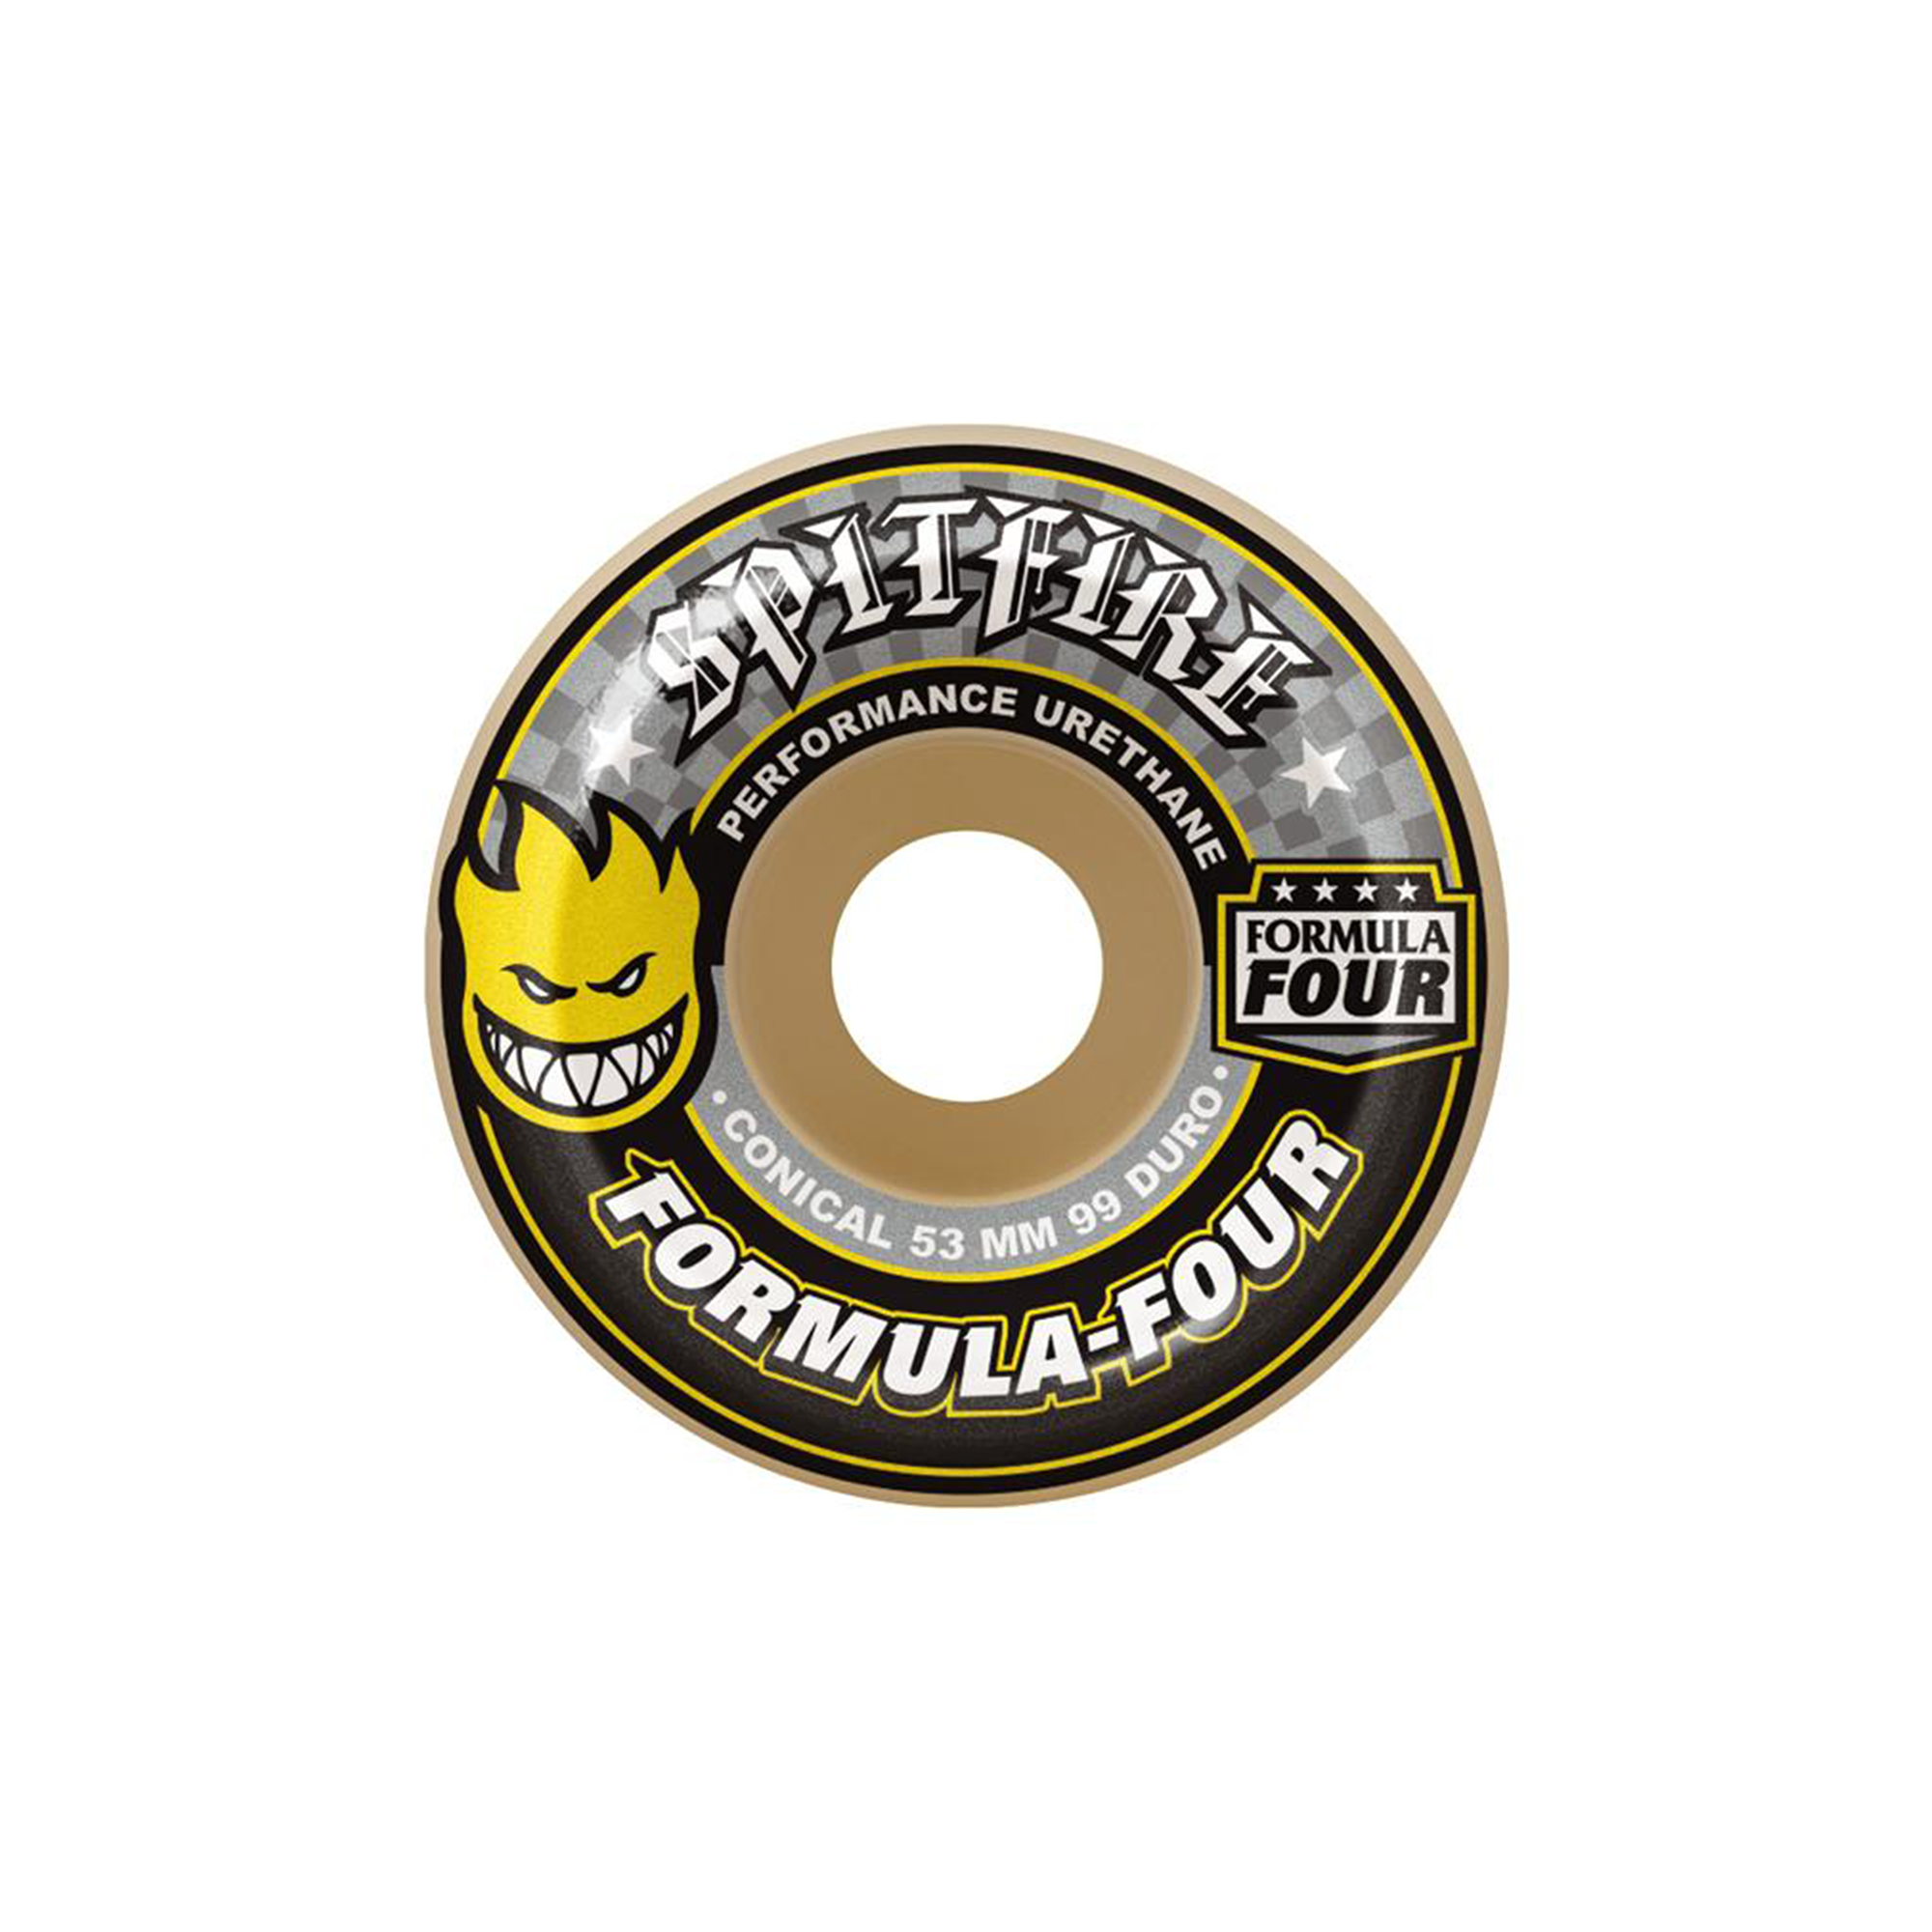 SPITFIRE FORMULA FOUR CONICAL 99 WHEELS